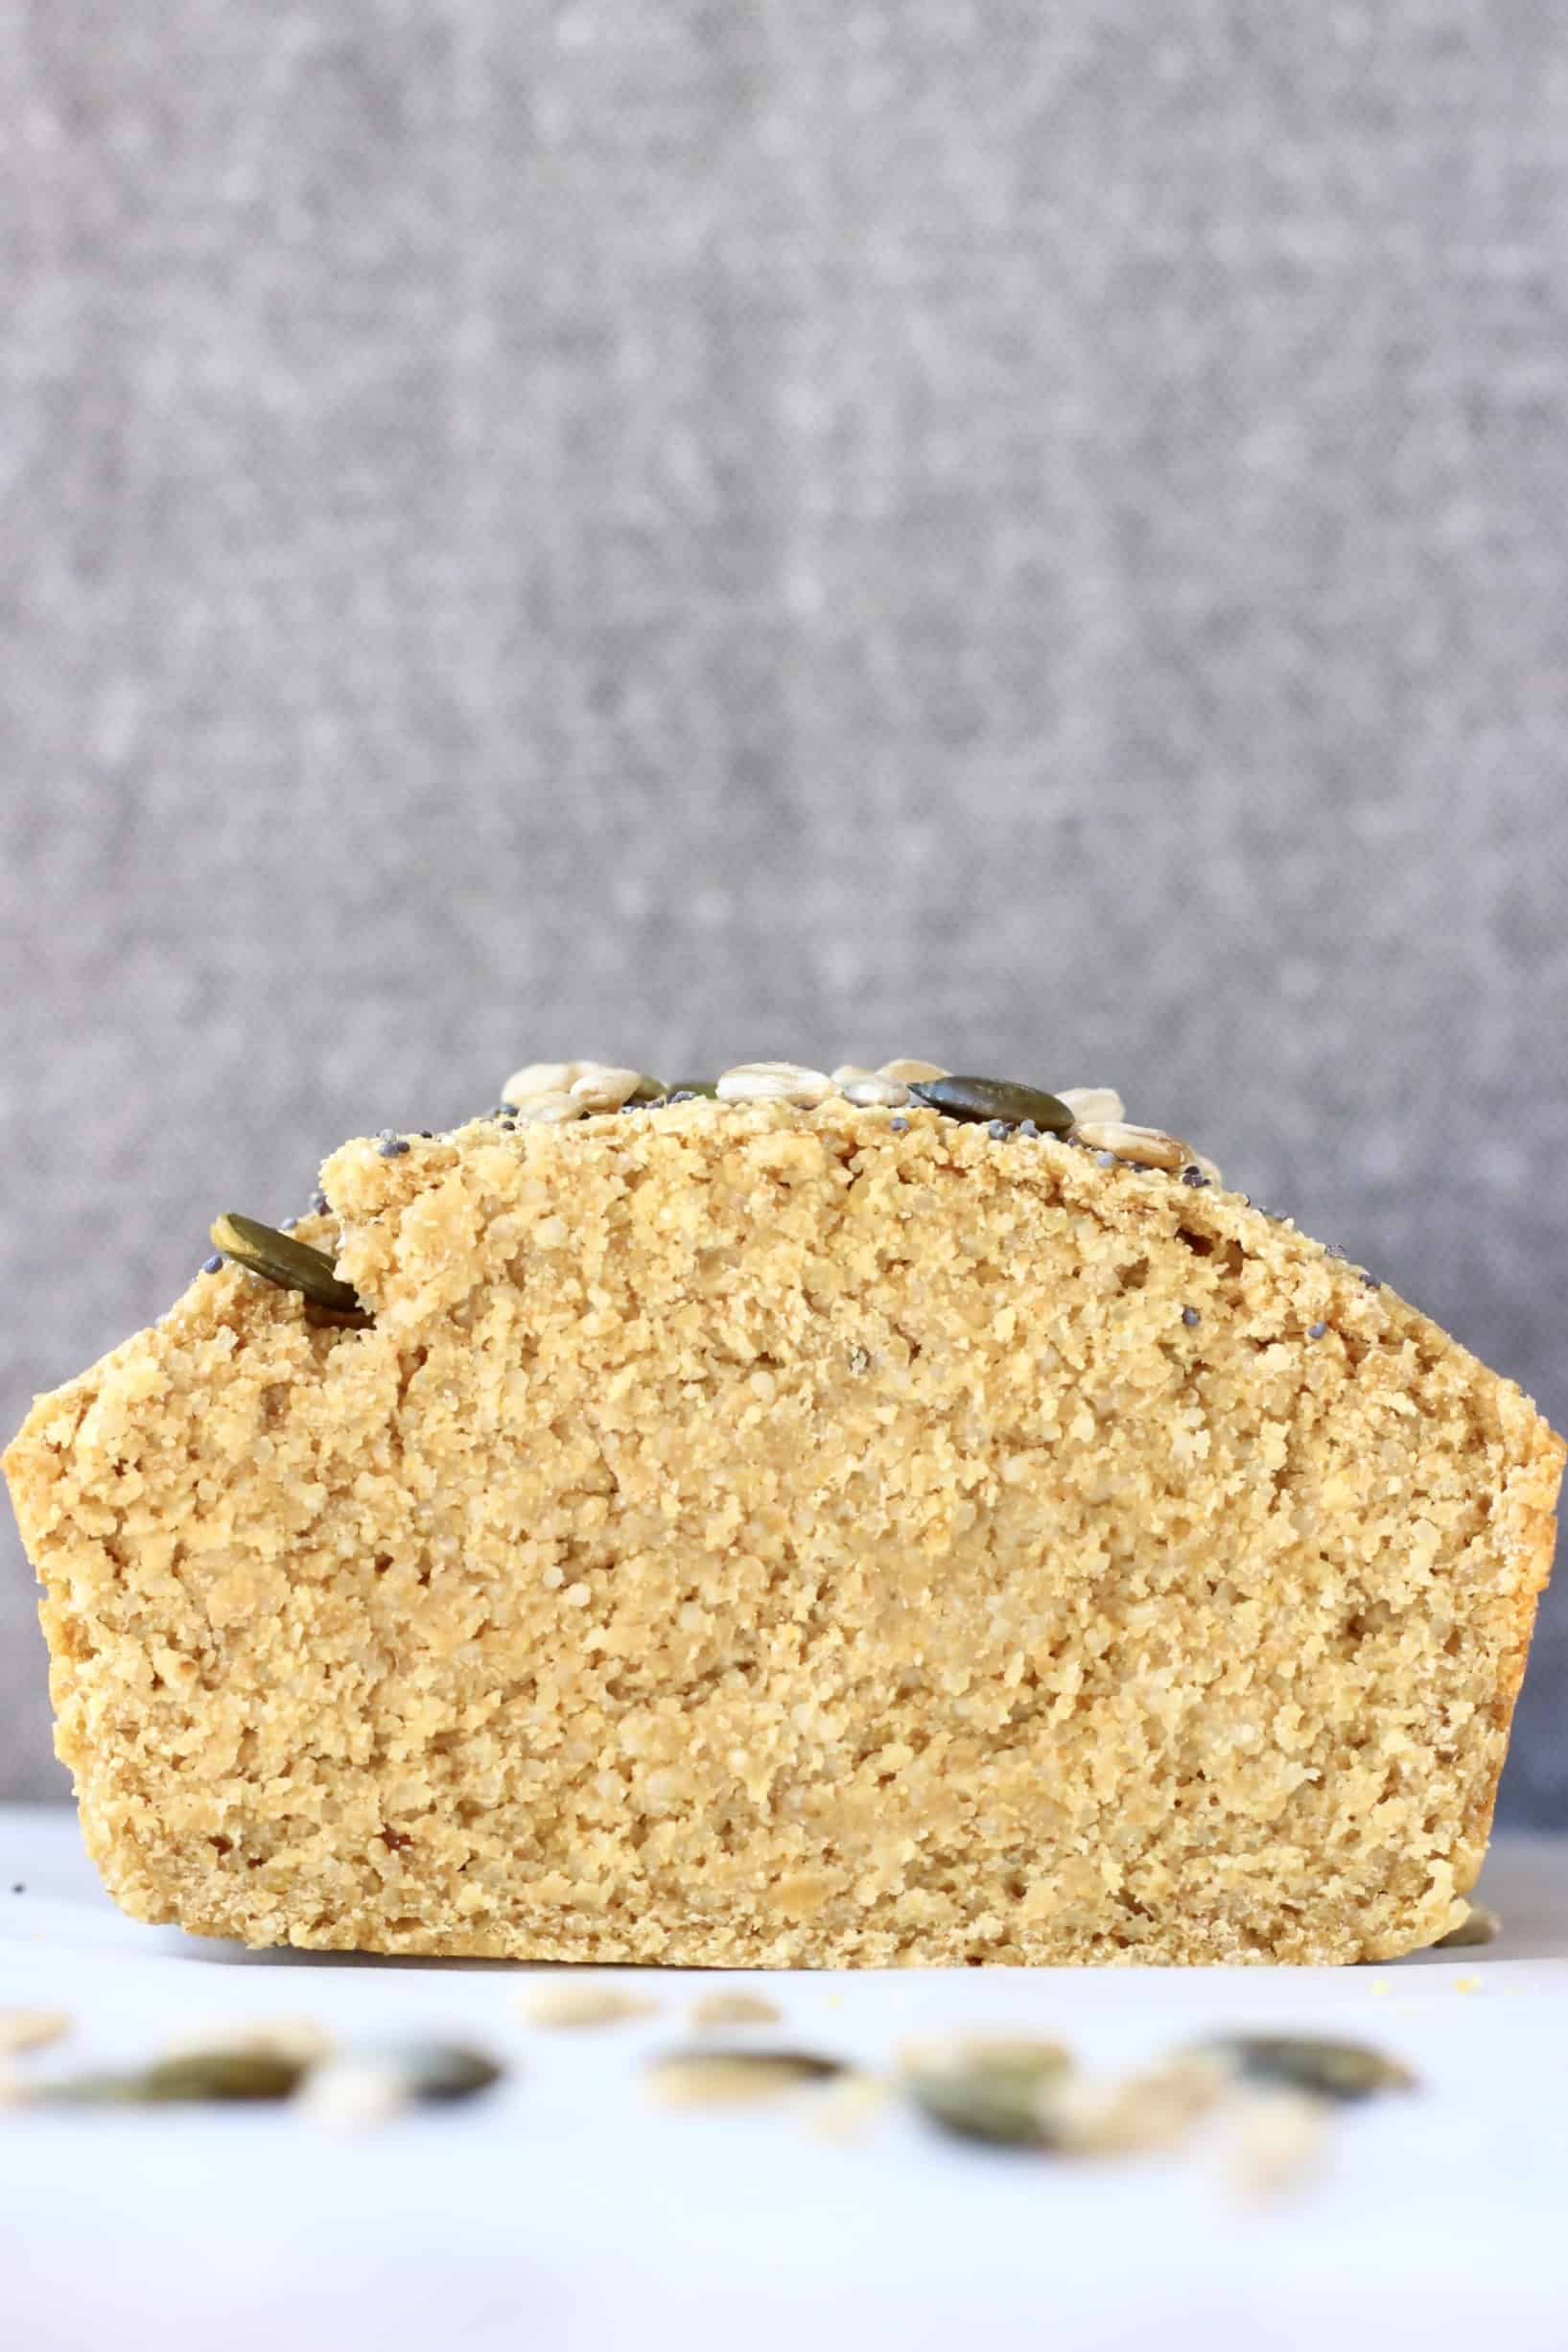 A cross-section of a loaf of quinoa bread